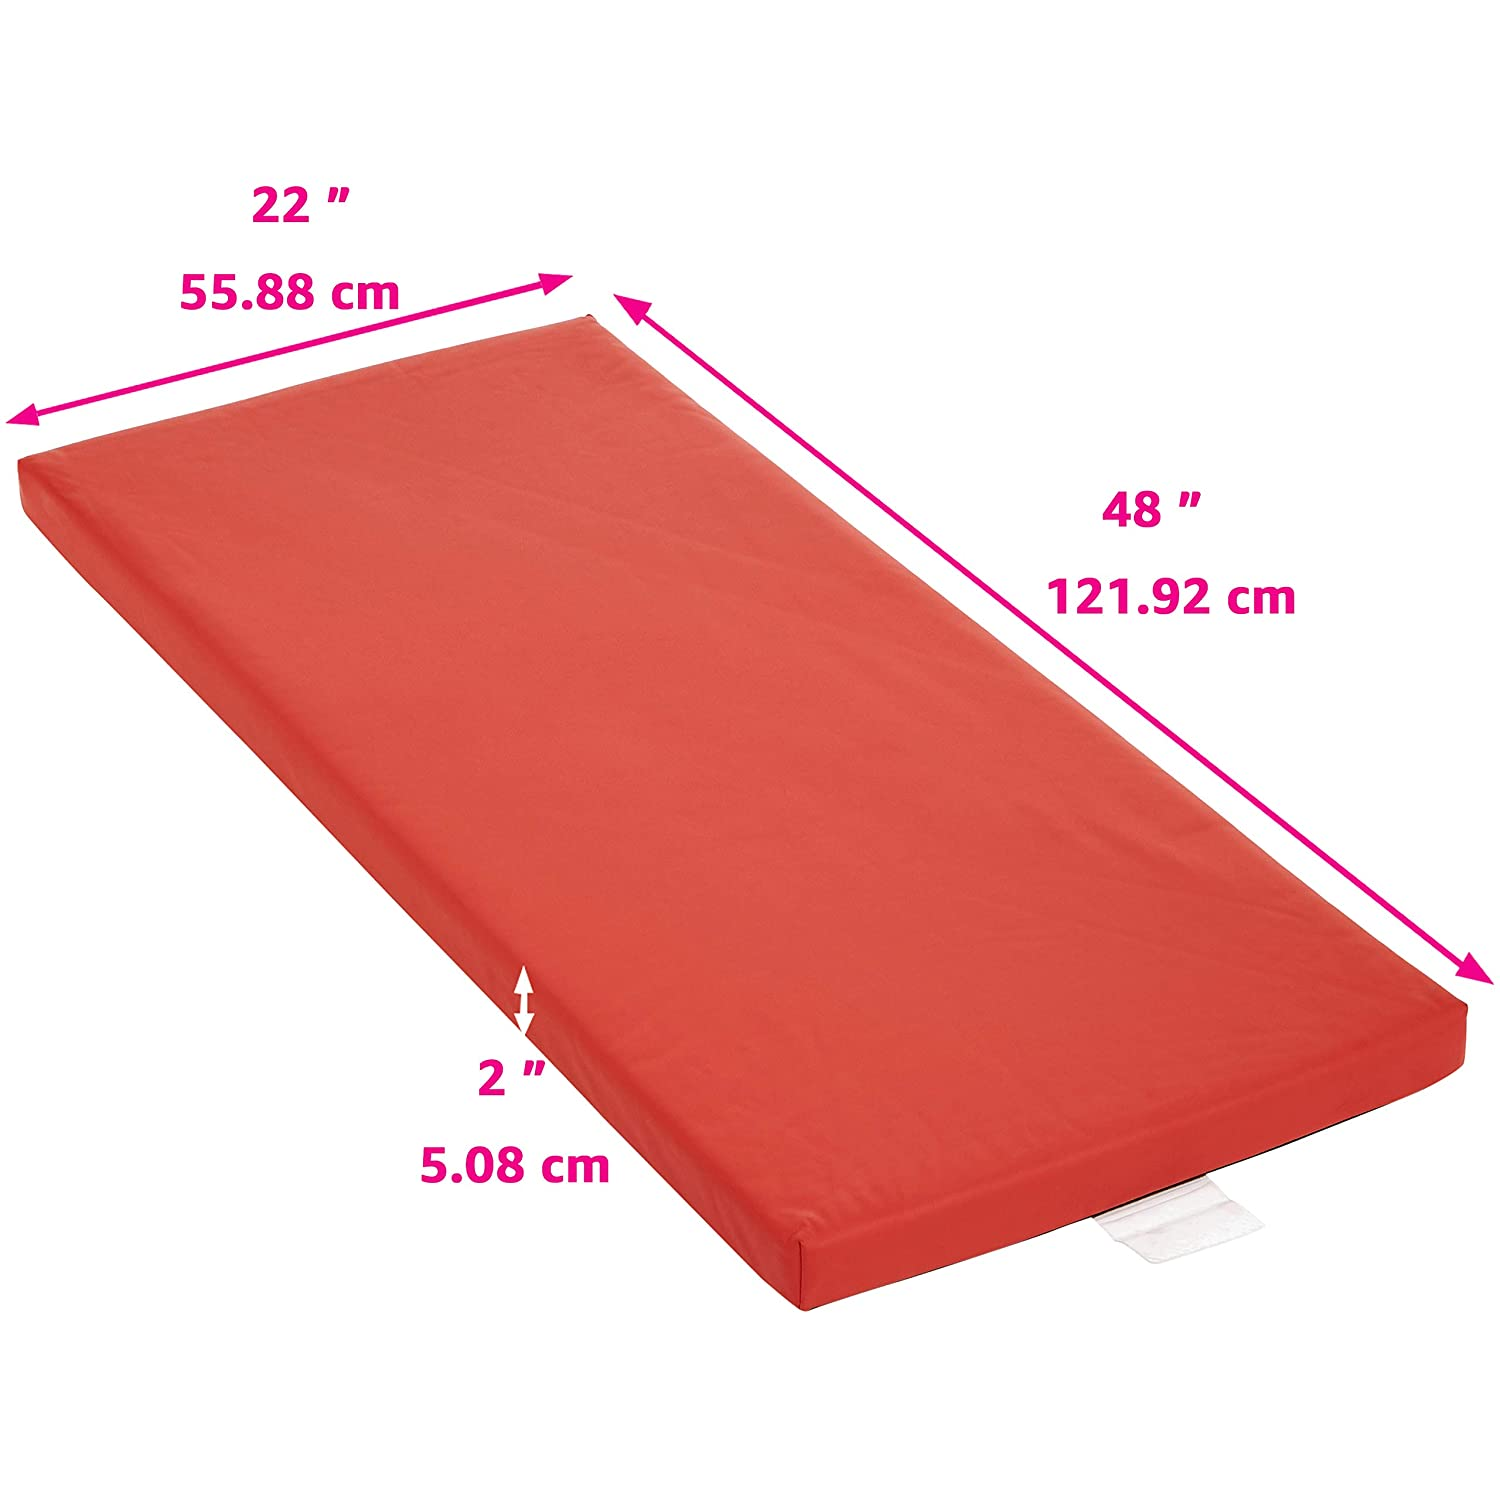 Basics Memory Foam Rest Nap Mats with Name Tag Holder Red 5-Pack